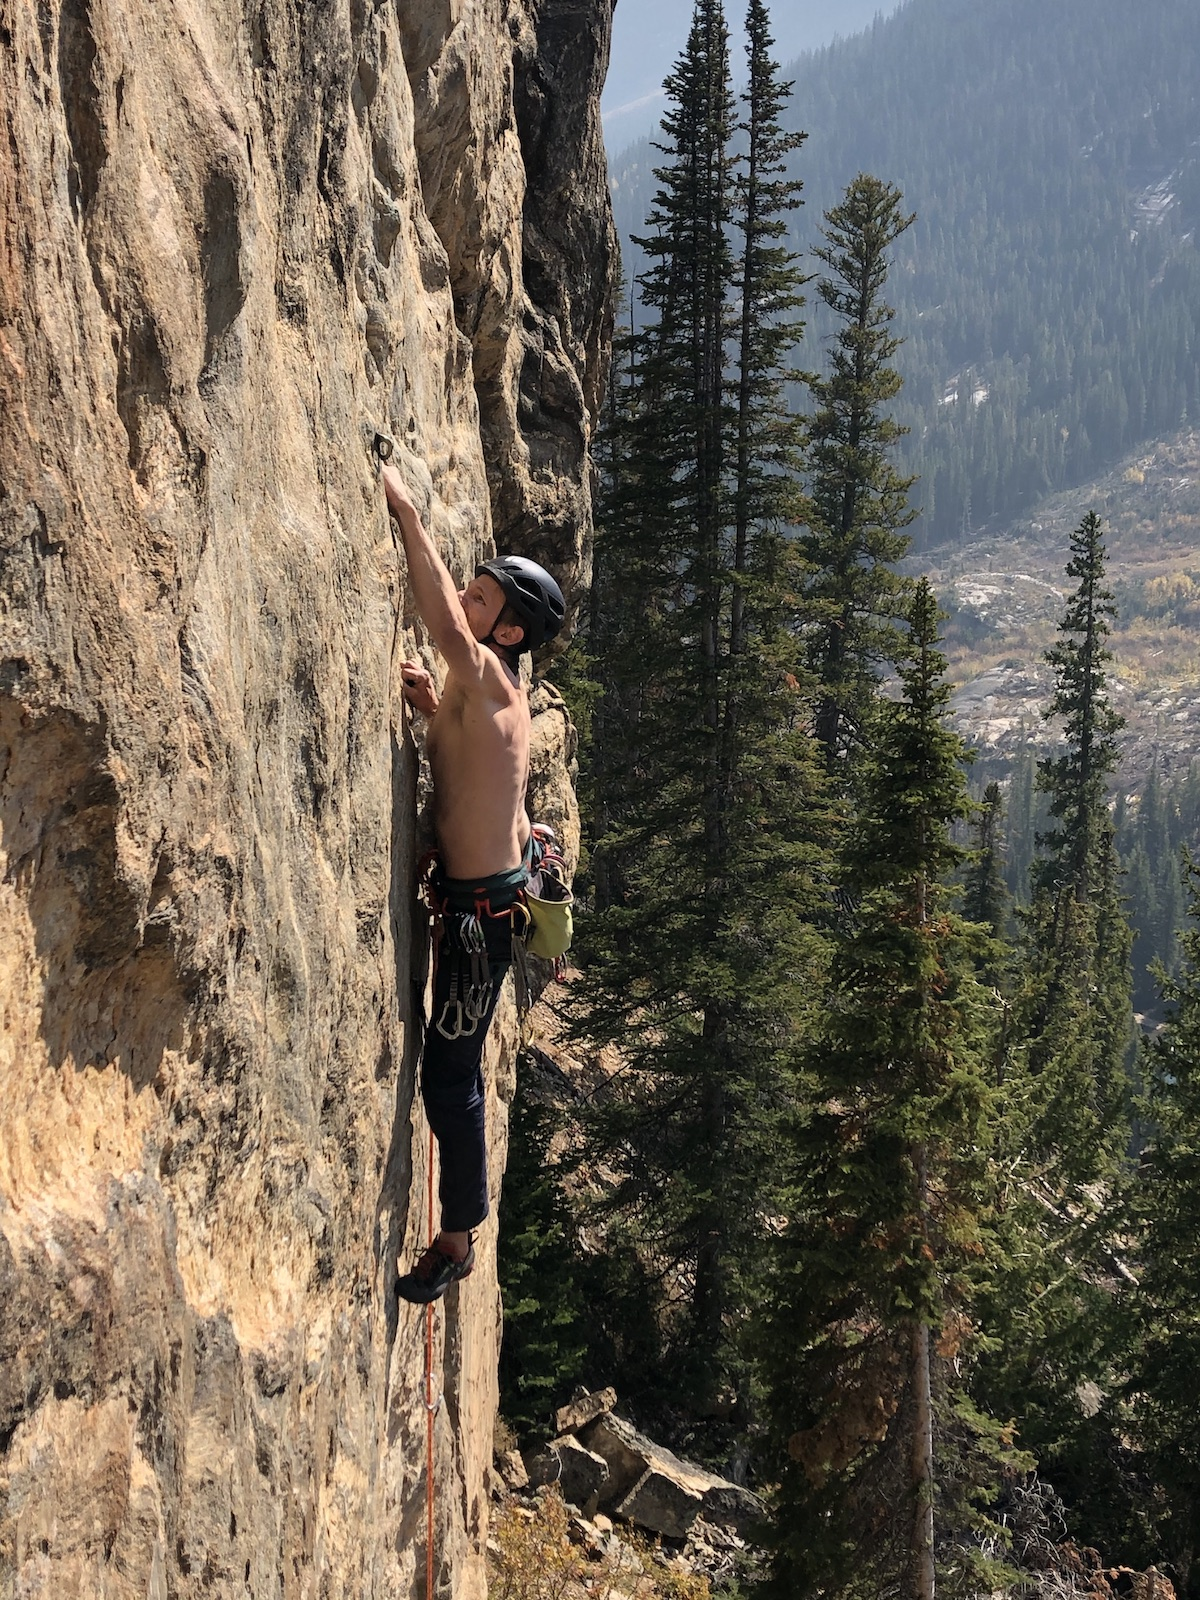 Derek Franz stays relaxed wearing the Black Diamond Vision MIPS helmet while onsighting Rock Candy (5.12a), a thin slippery route on Independence Pass, Colorado. [Photo] Elizabeth Riley